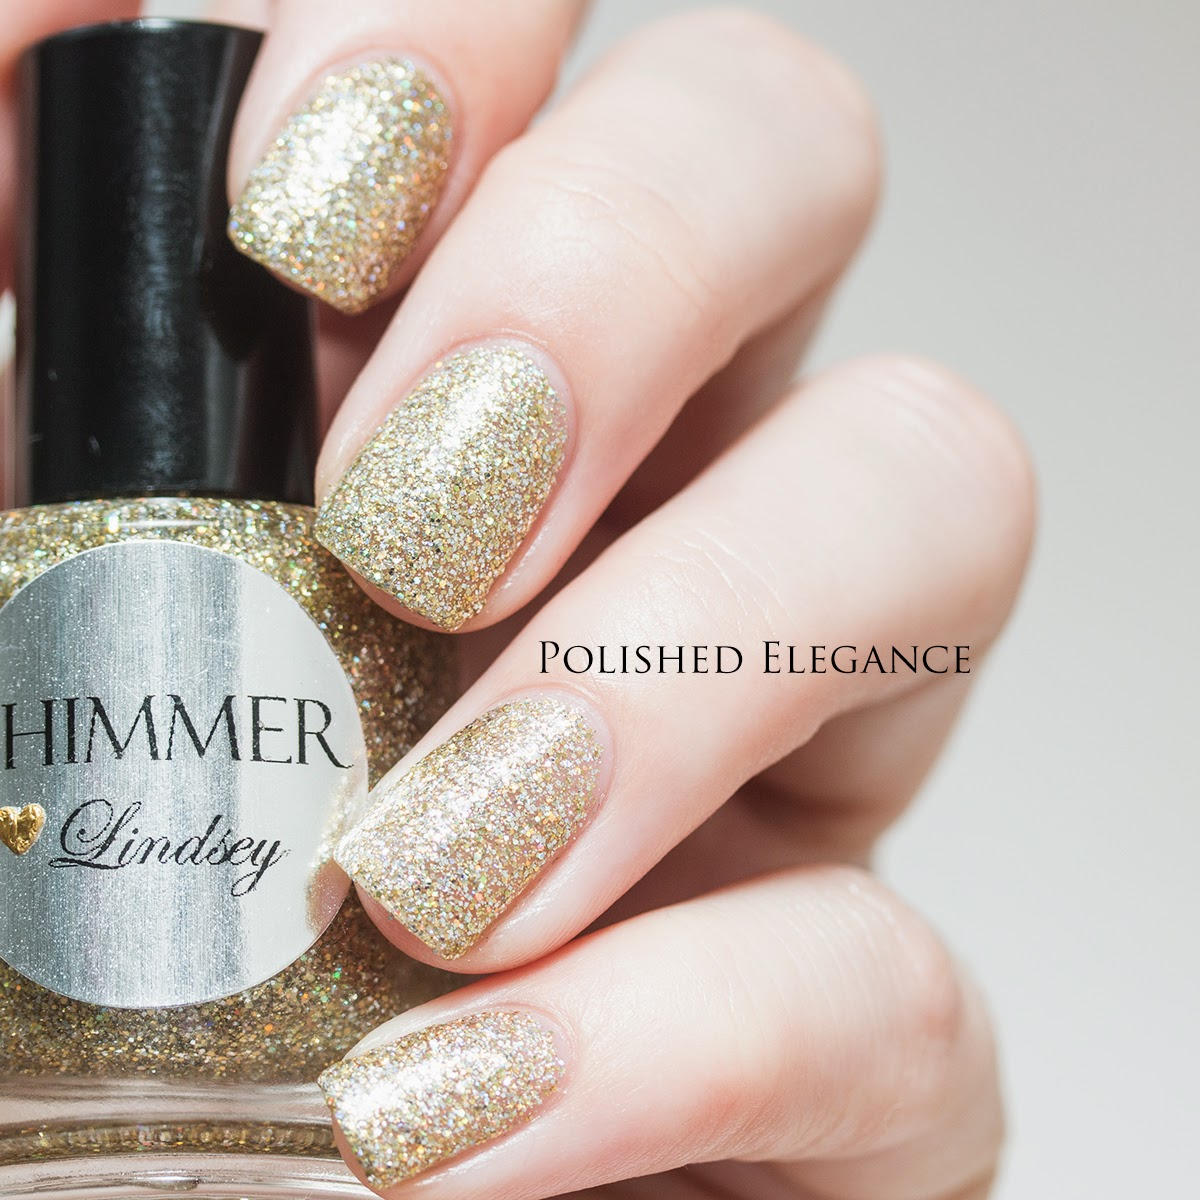 Shimmer Polish - Lindsey swatch review